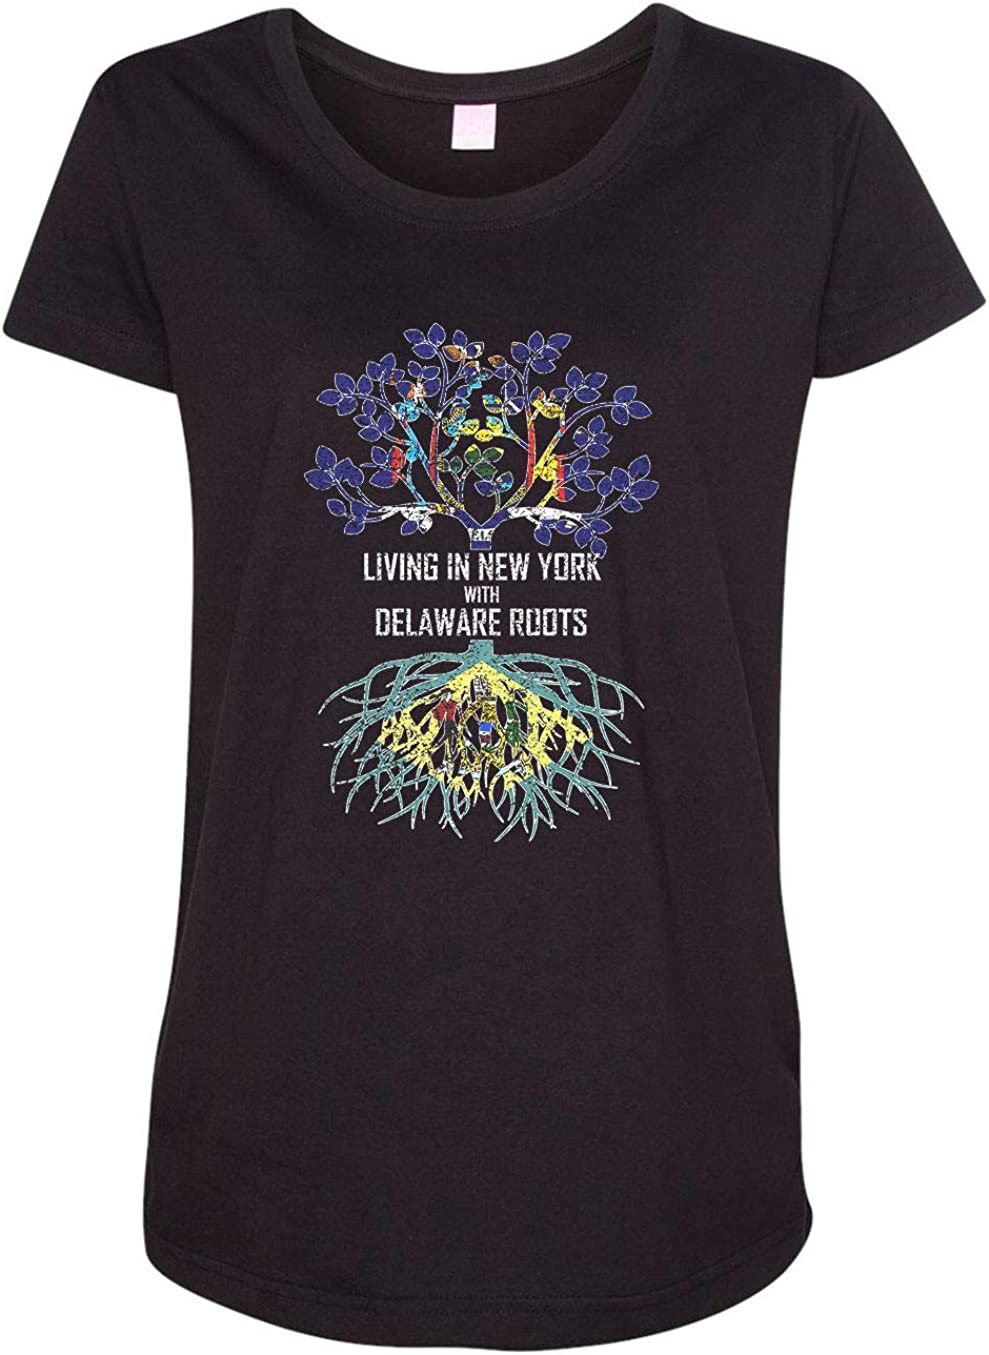 HARD EDGE DESIGN Women's Living in New York with Delaware Roots T-Shirt